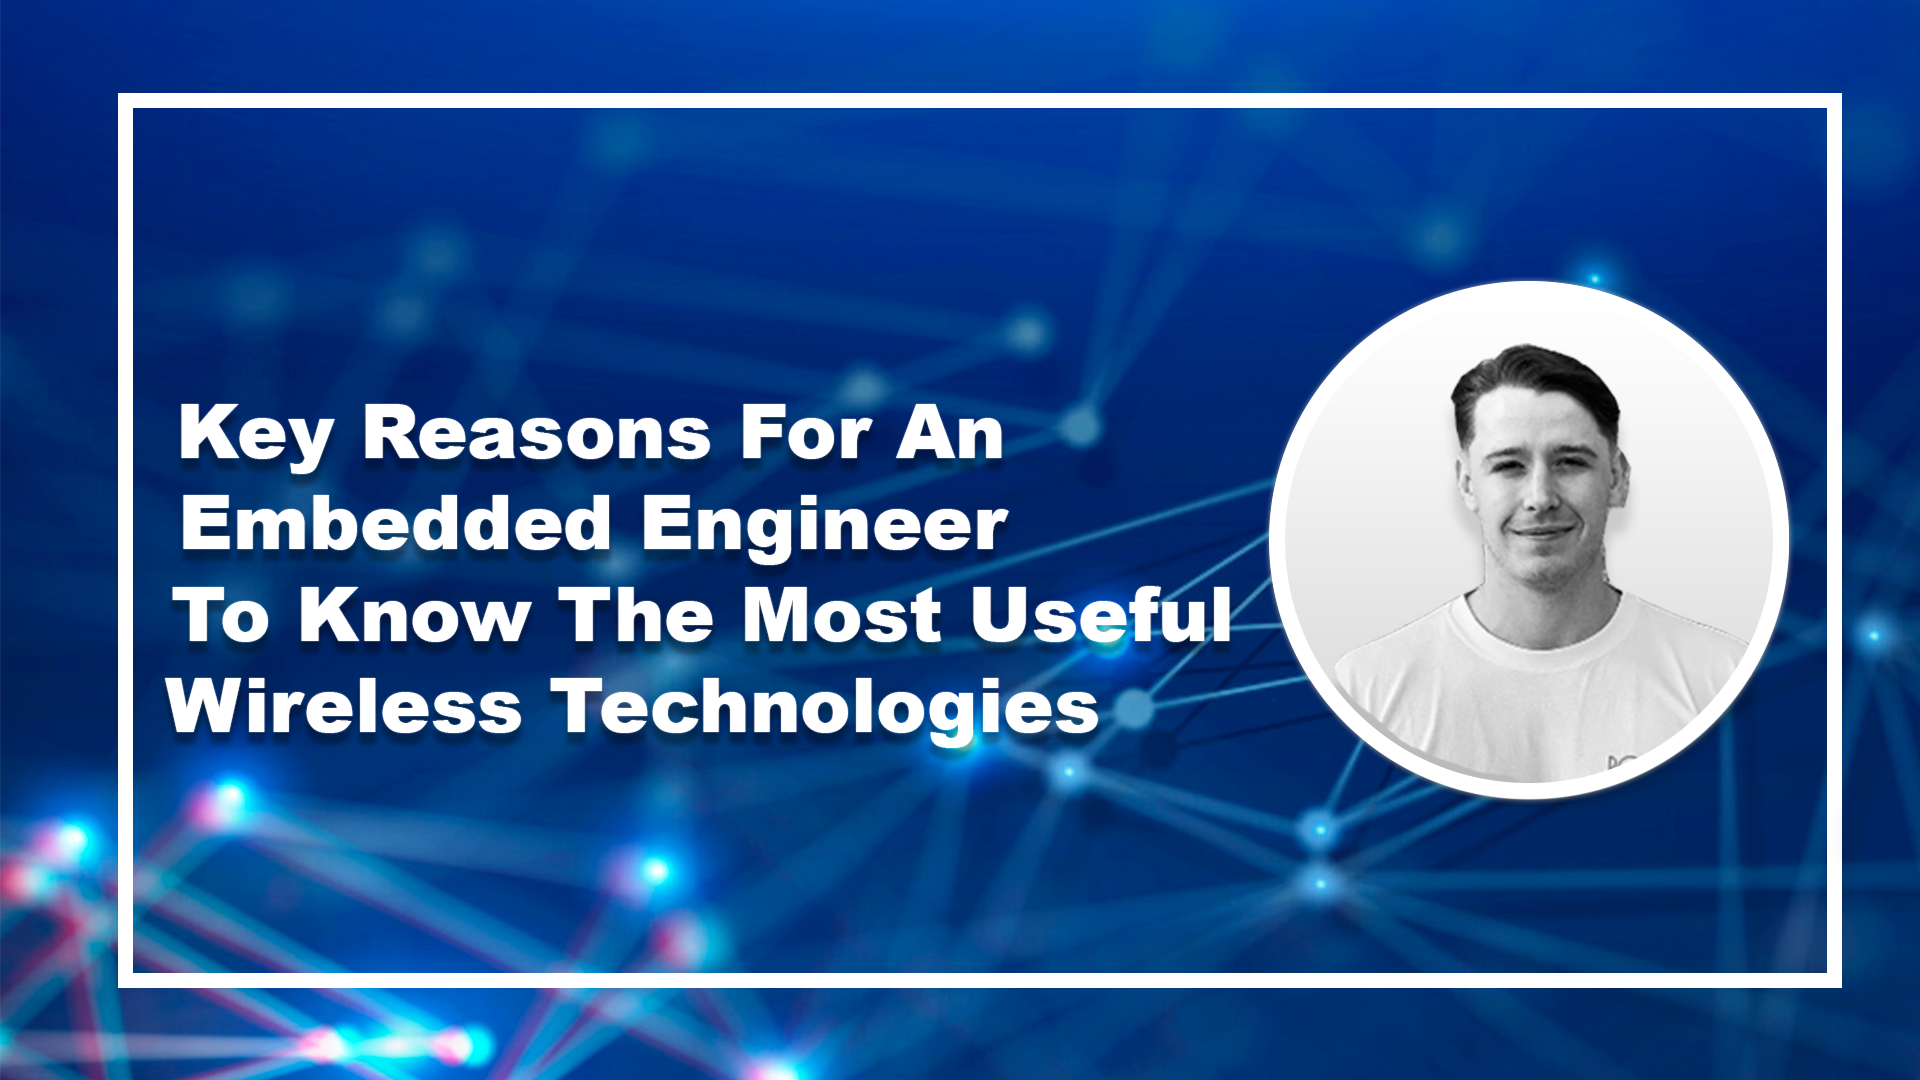 Key Reasons For An Embedded Engineer To Know The Most Useful Wireless Technologies